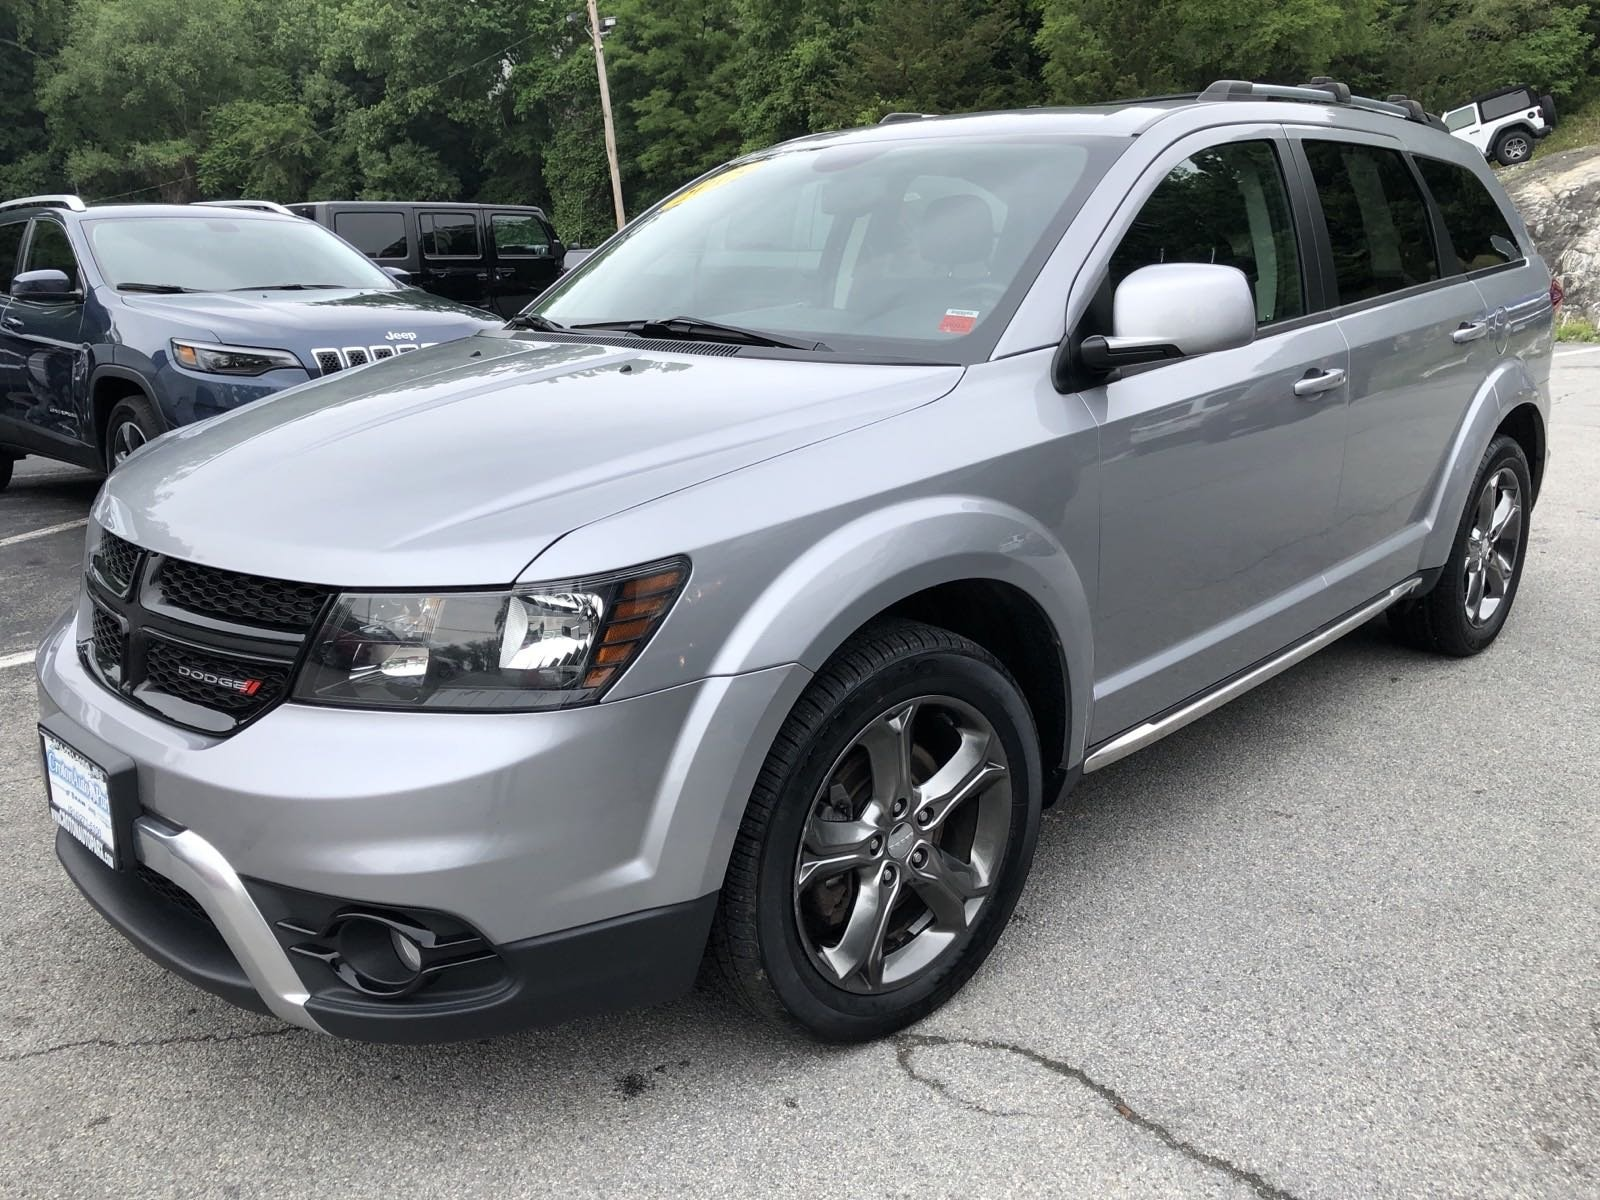 2015 Dodge Journey Crossroad AWD  Crossroad